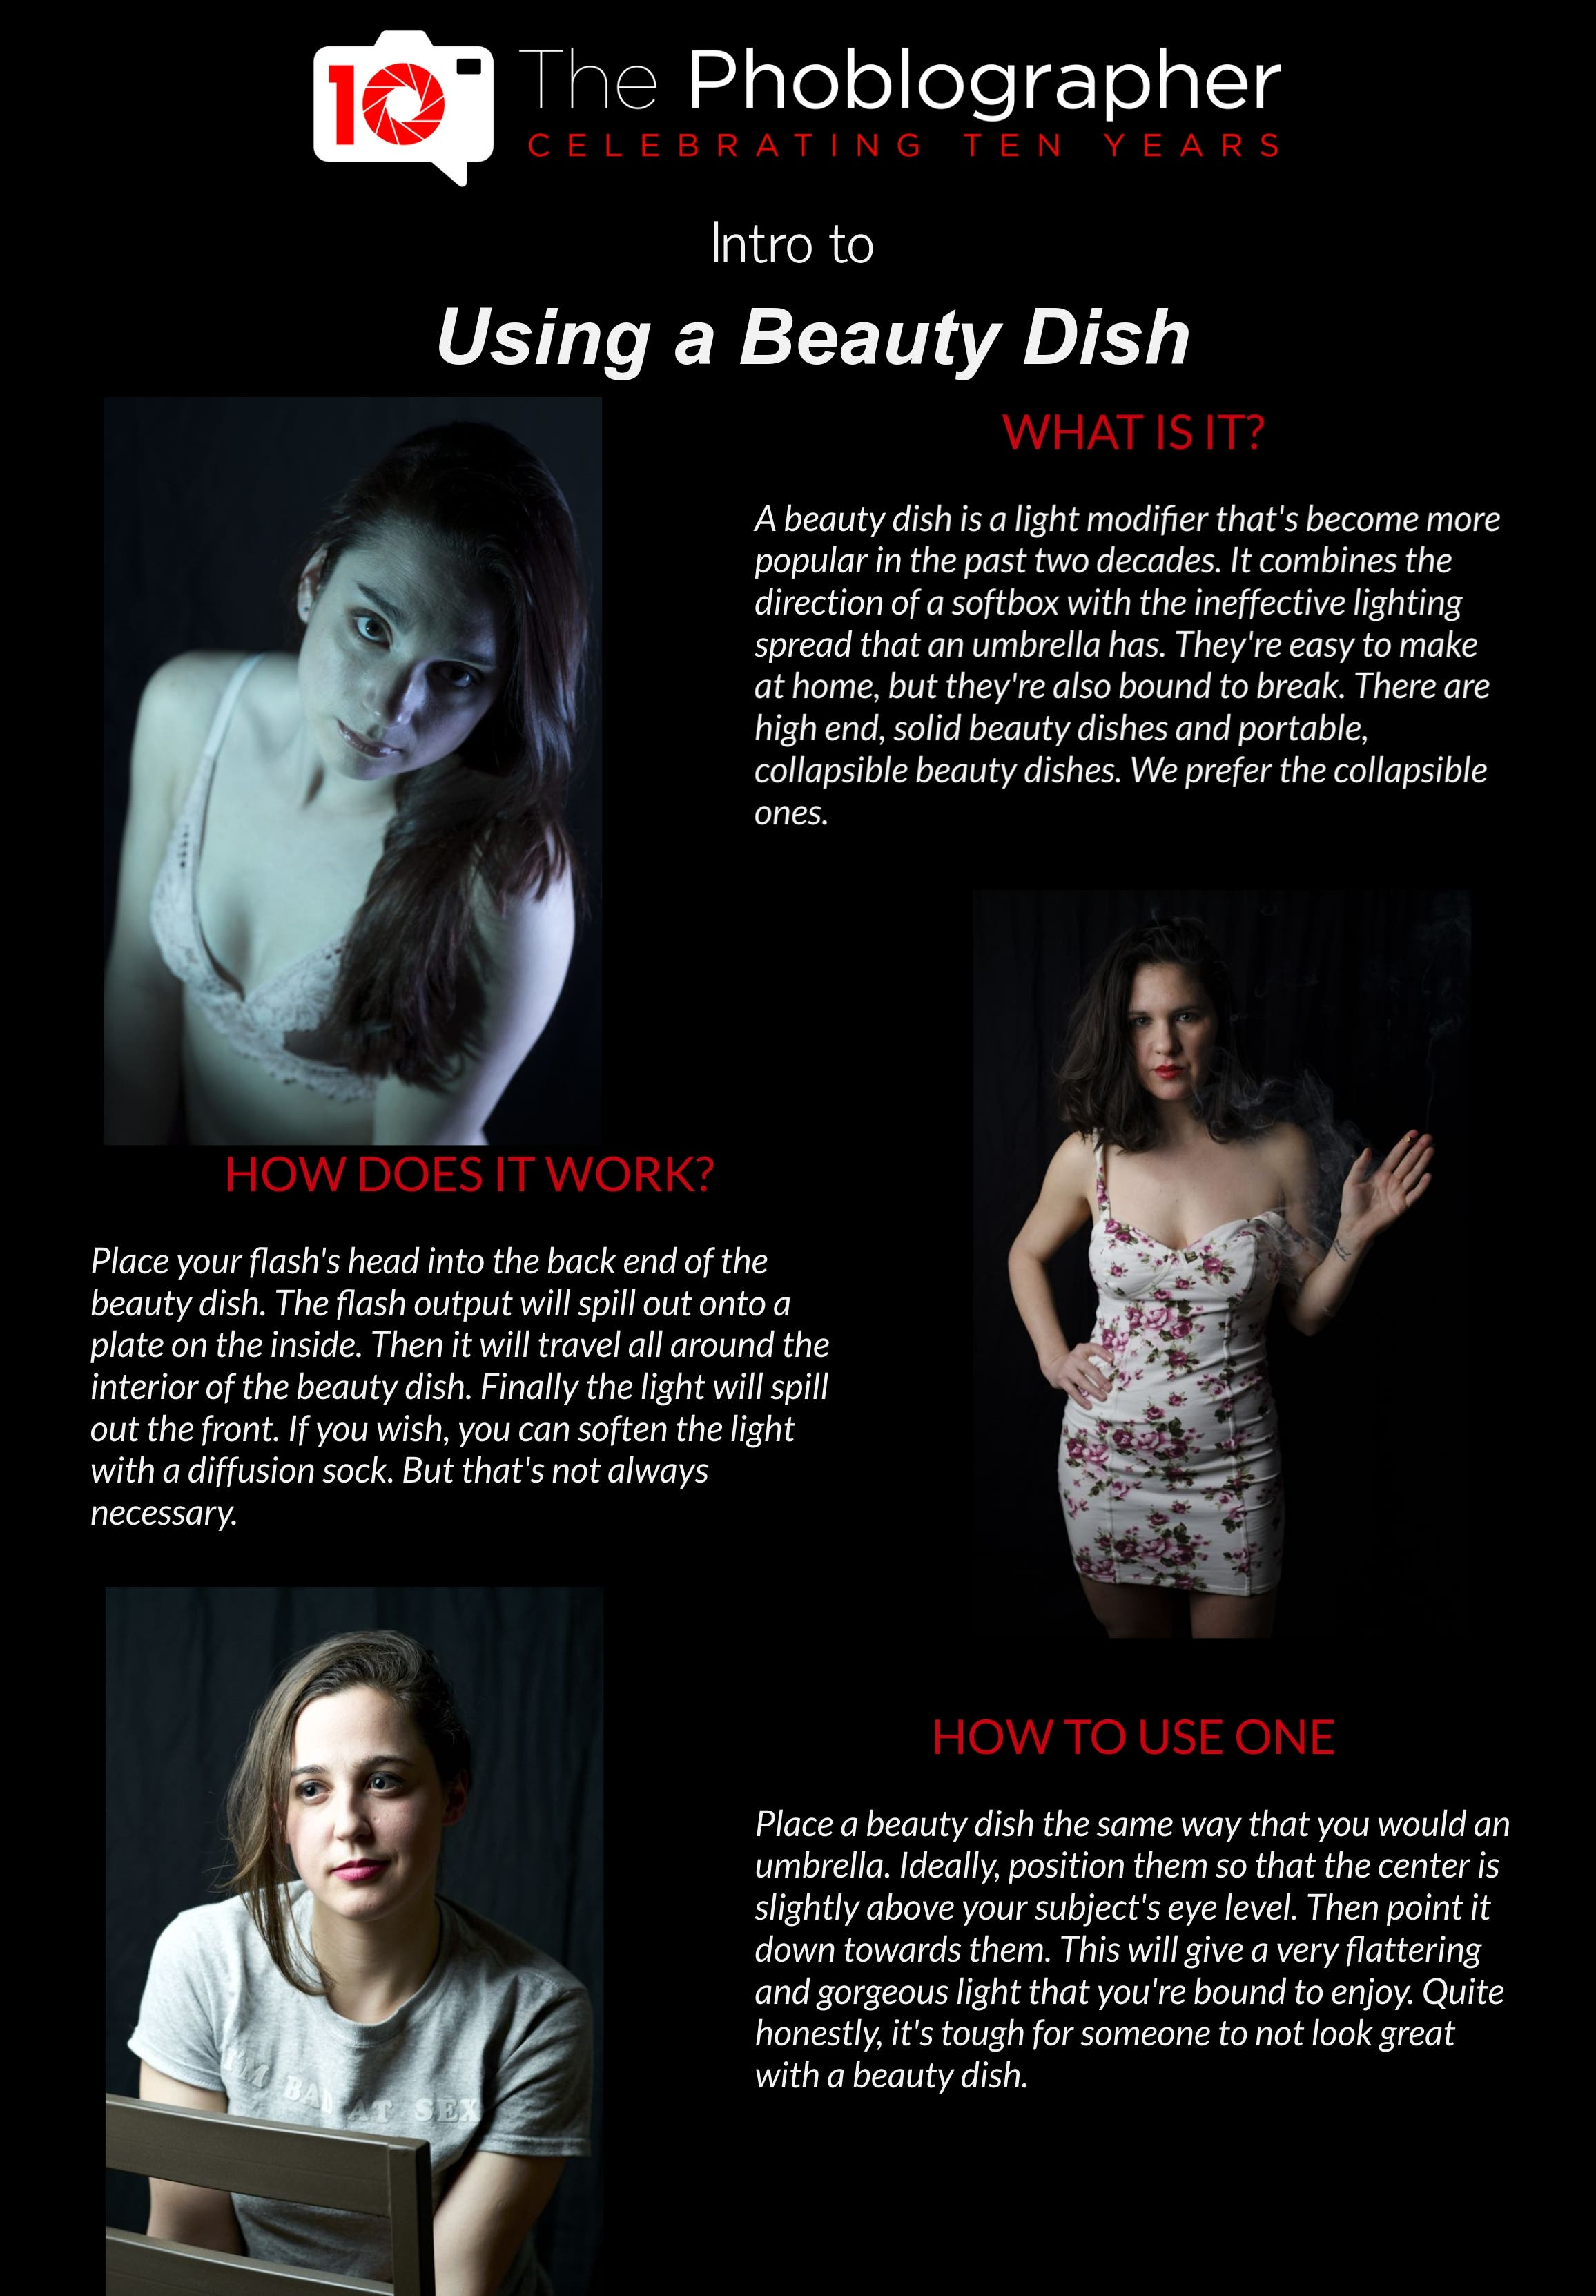 What Photographers Need to Know About Their Beauty Dish